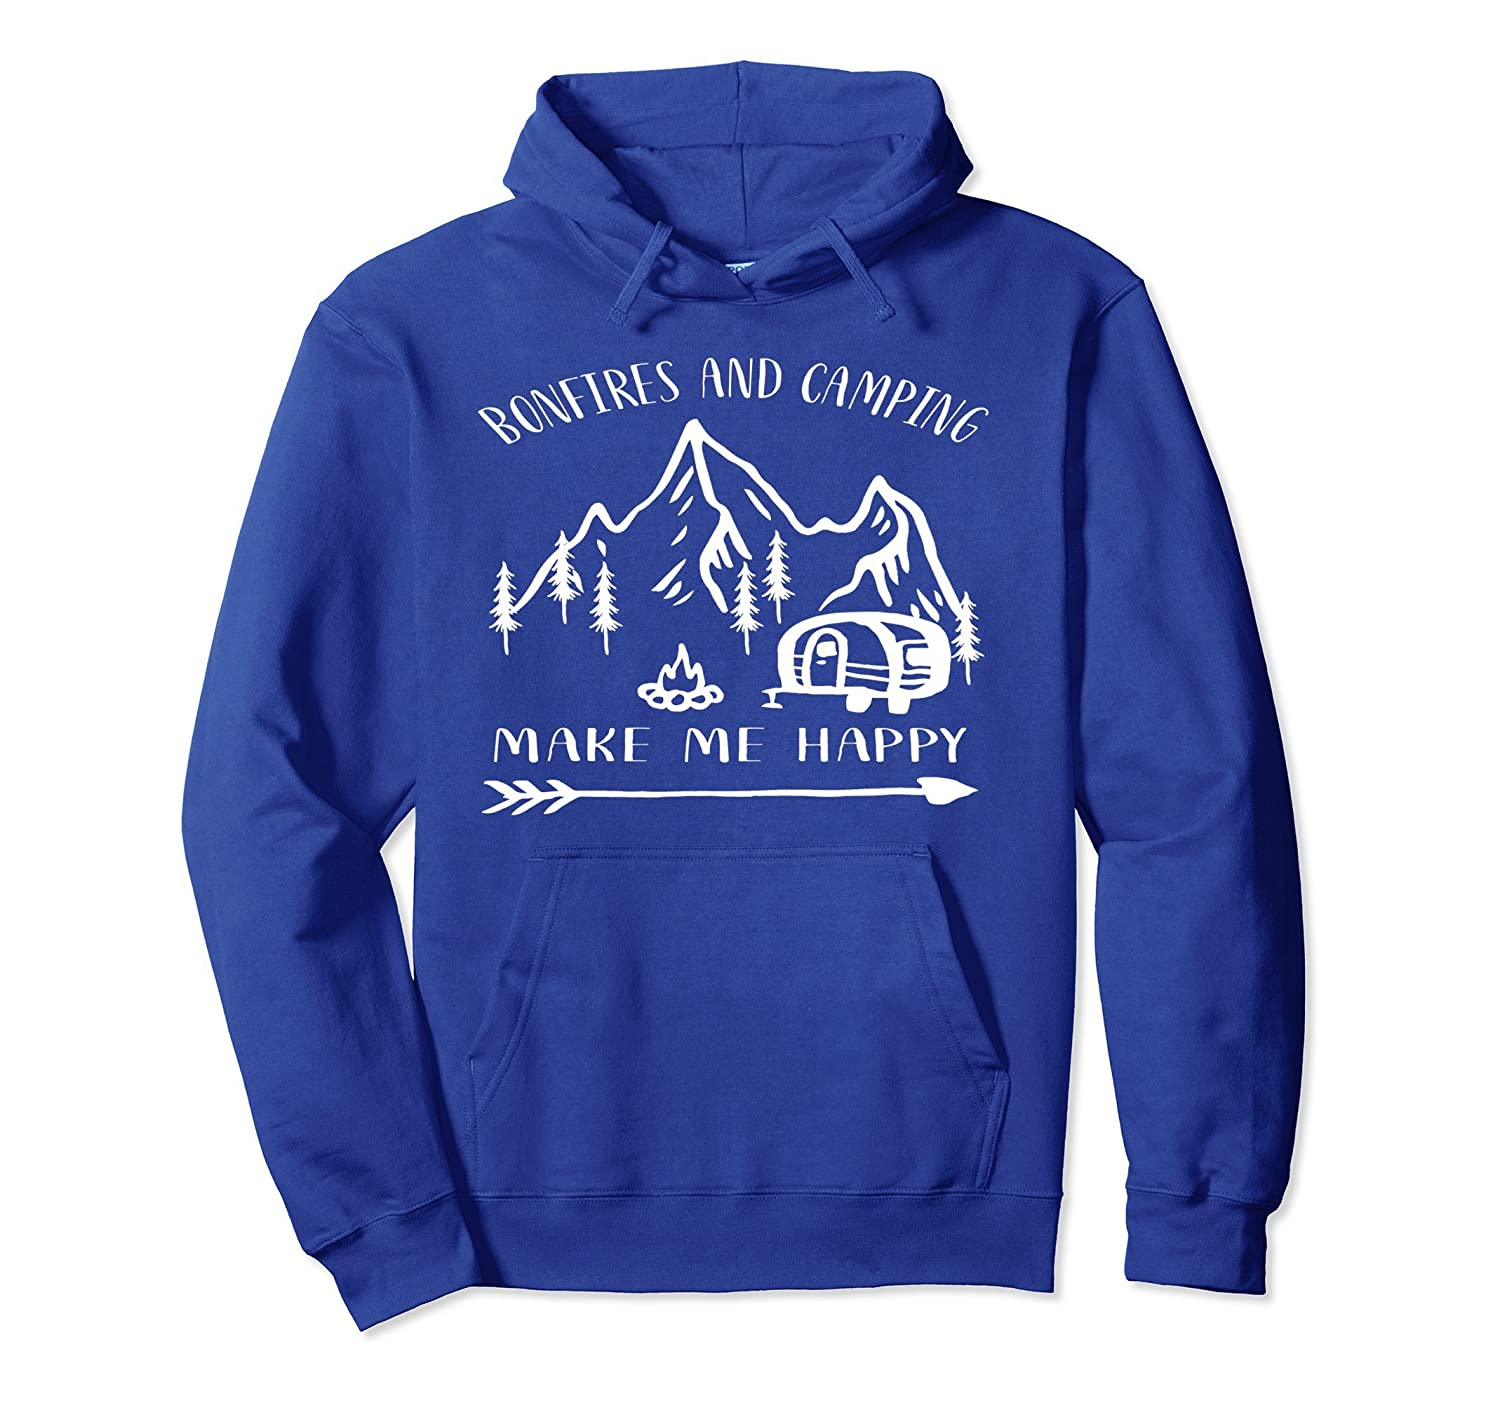 BONFIRES AND CAMPING MAKE ME HAPPY Camping Hoodie-alottee gift